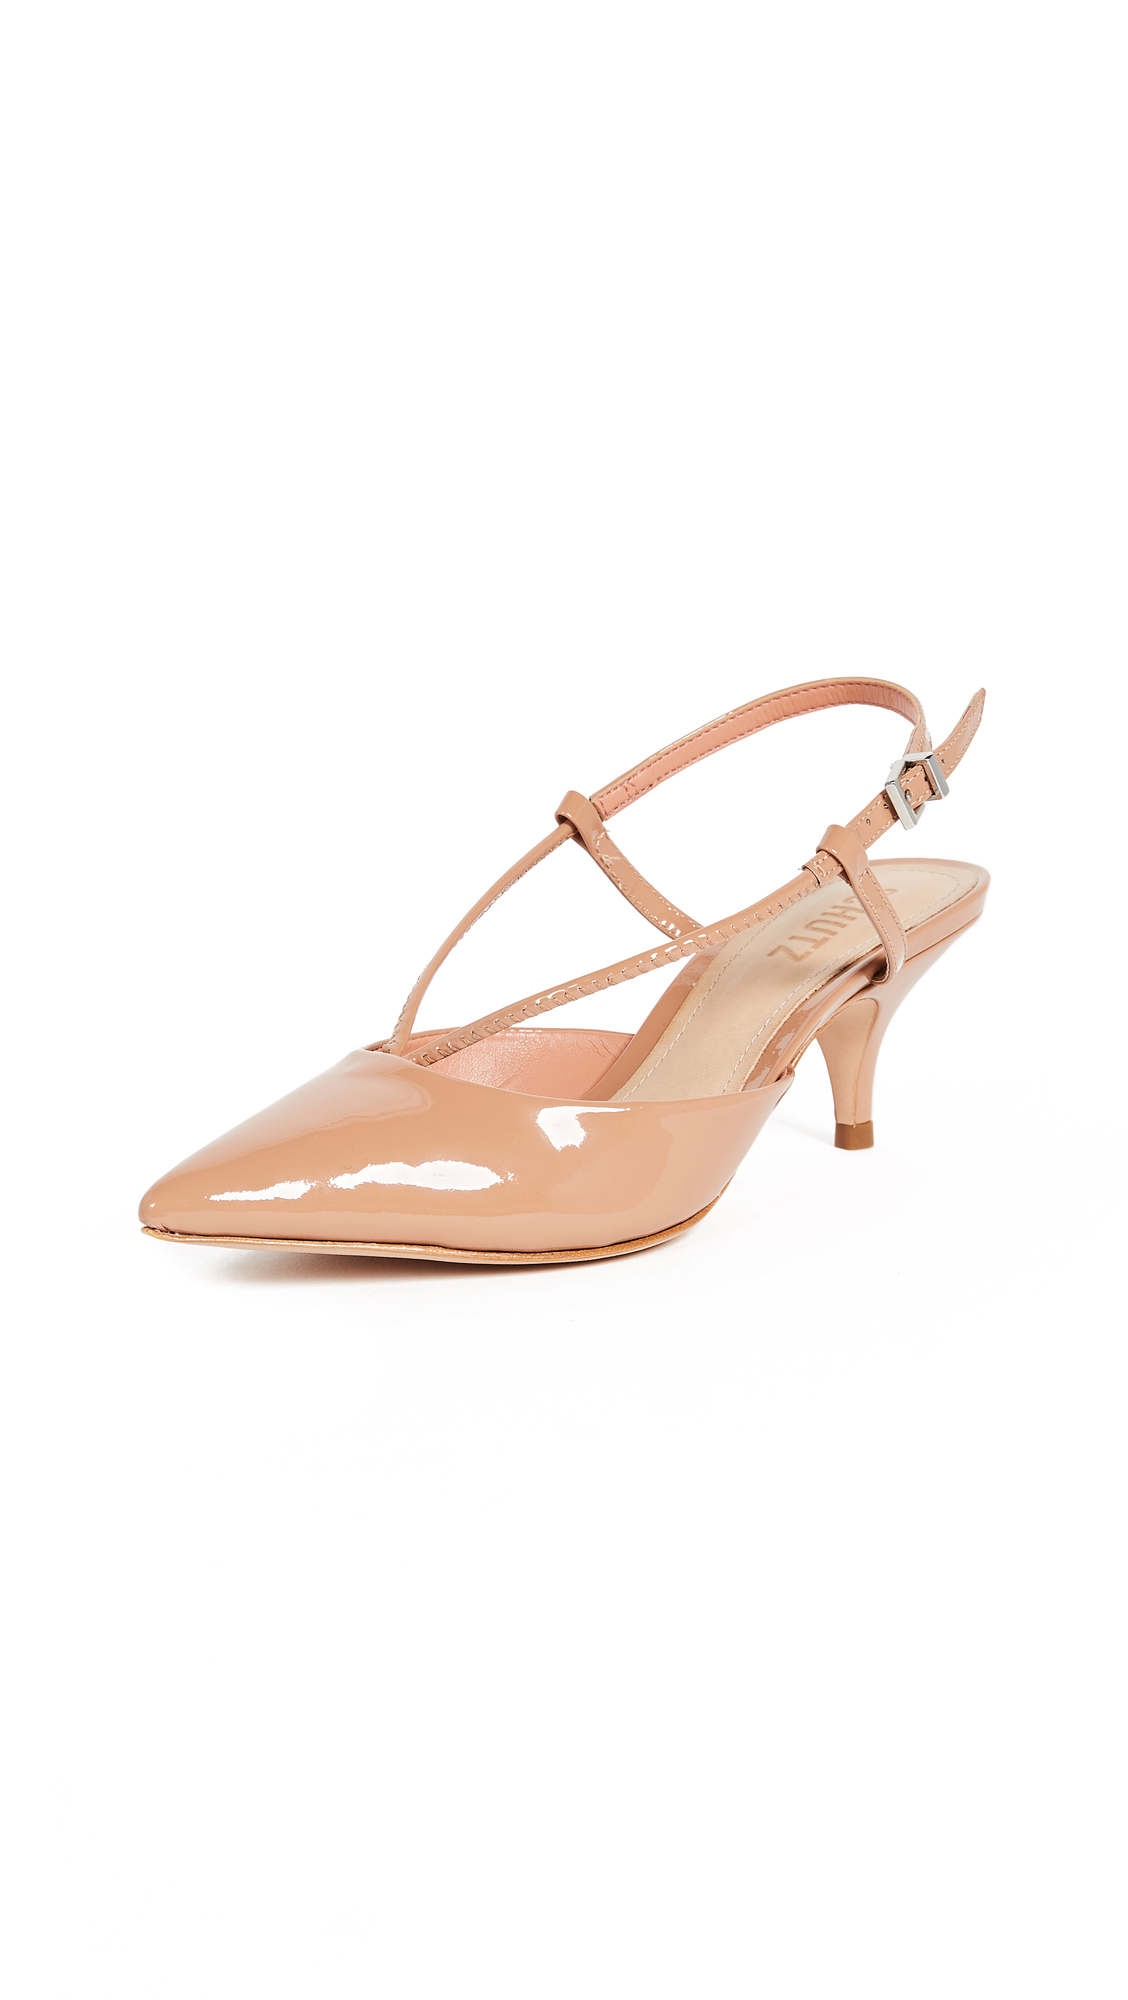 Schutz Wera Slingback Kitten Heel Pumps - Toasted Nut